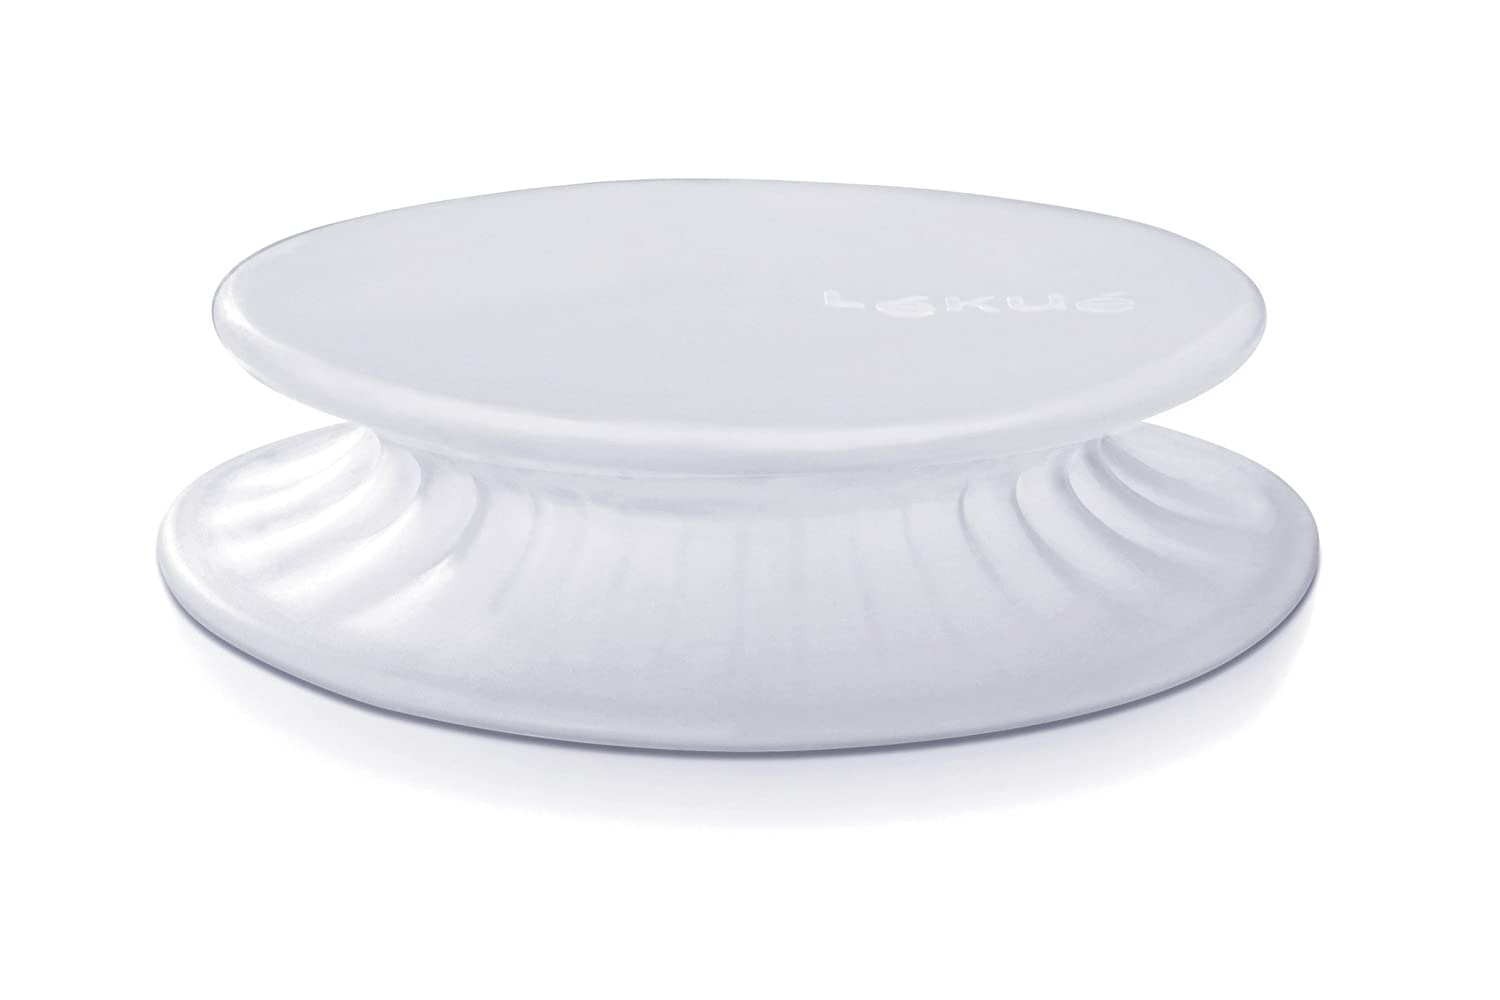 Lékué - Tapa extensible, 20 cm, color blanco